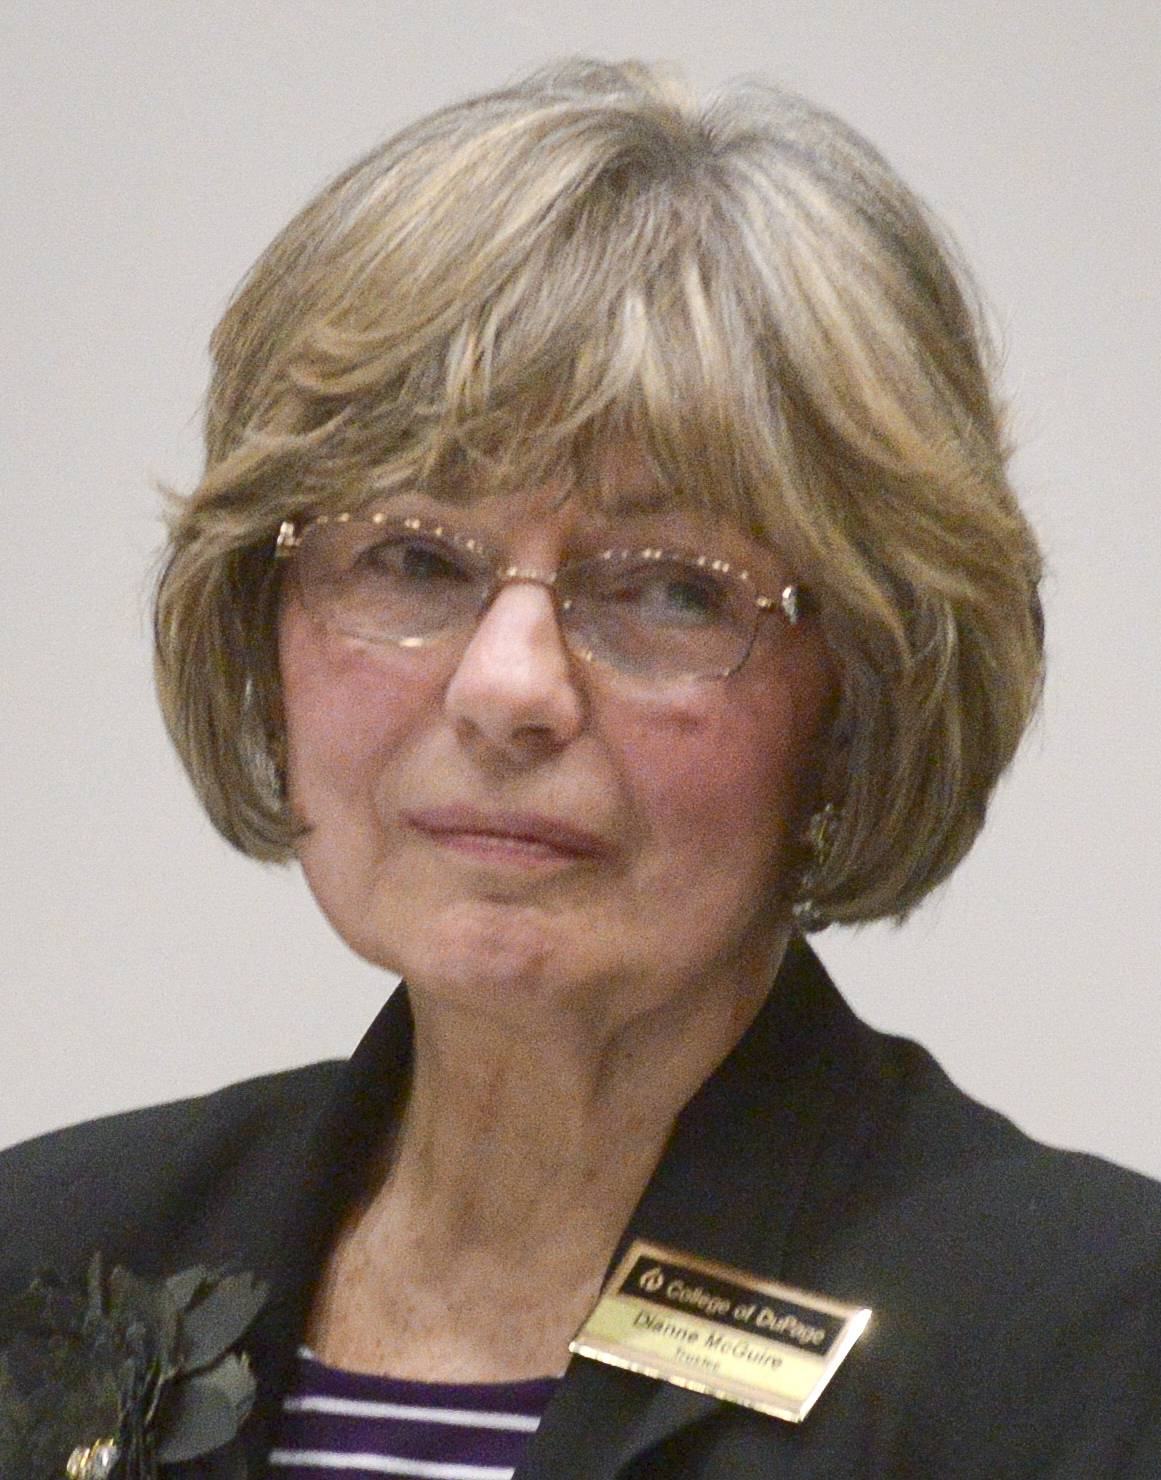 College of DuPage trustee: Fellow trustee wants Breuder back